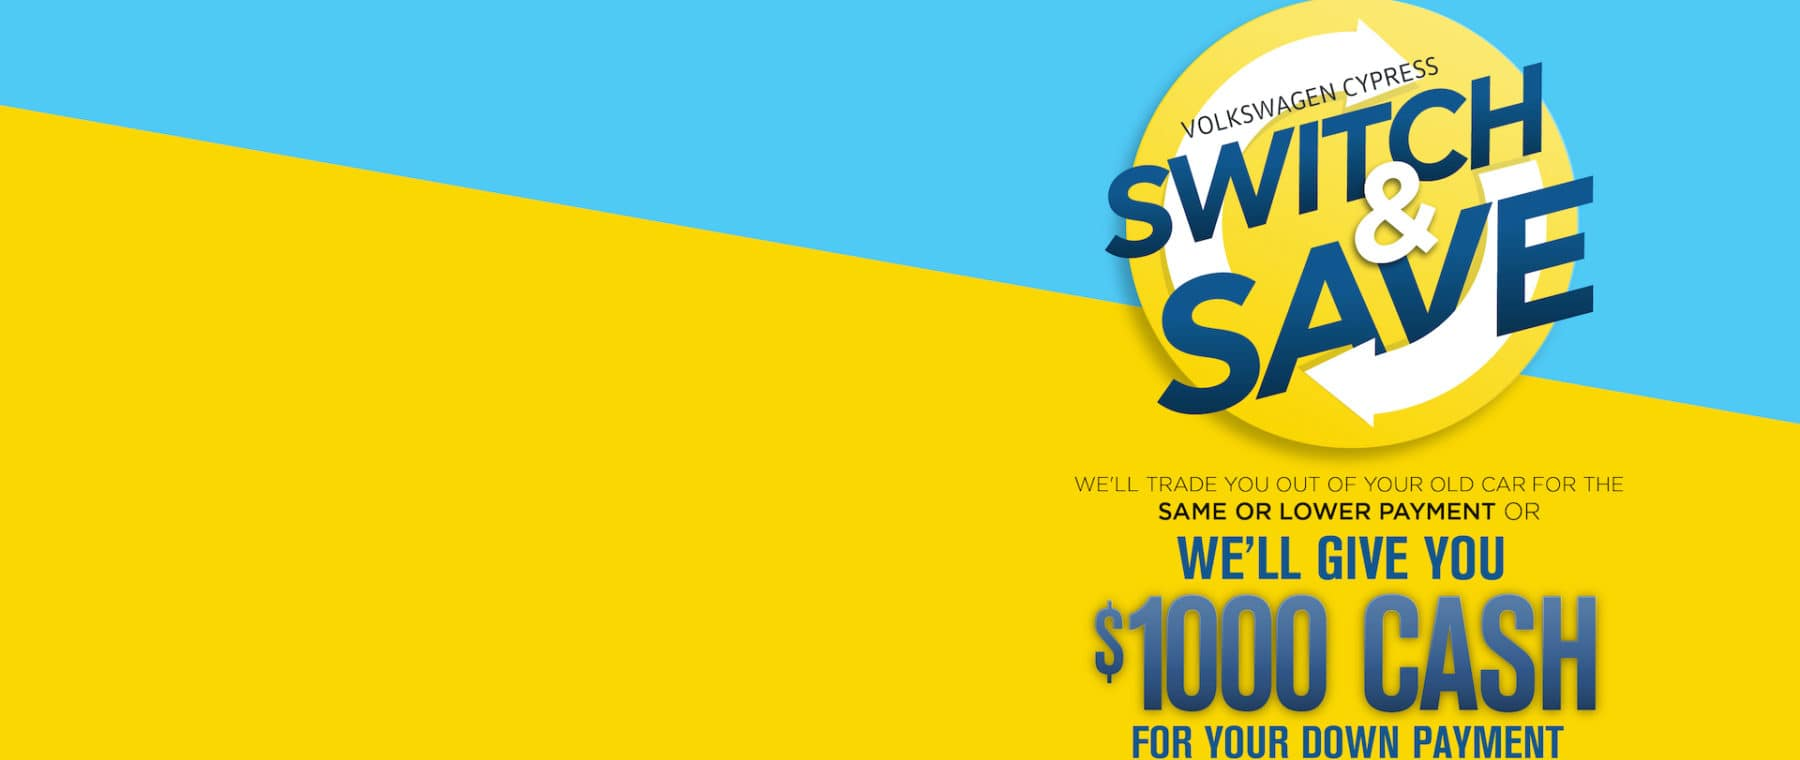 Switch & Save at Volkswagen Cypress today!